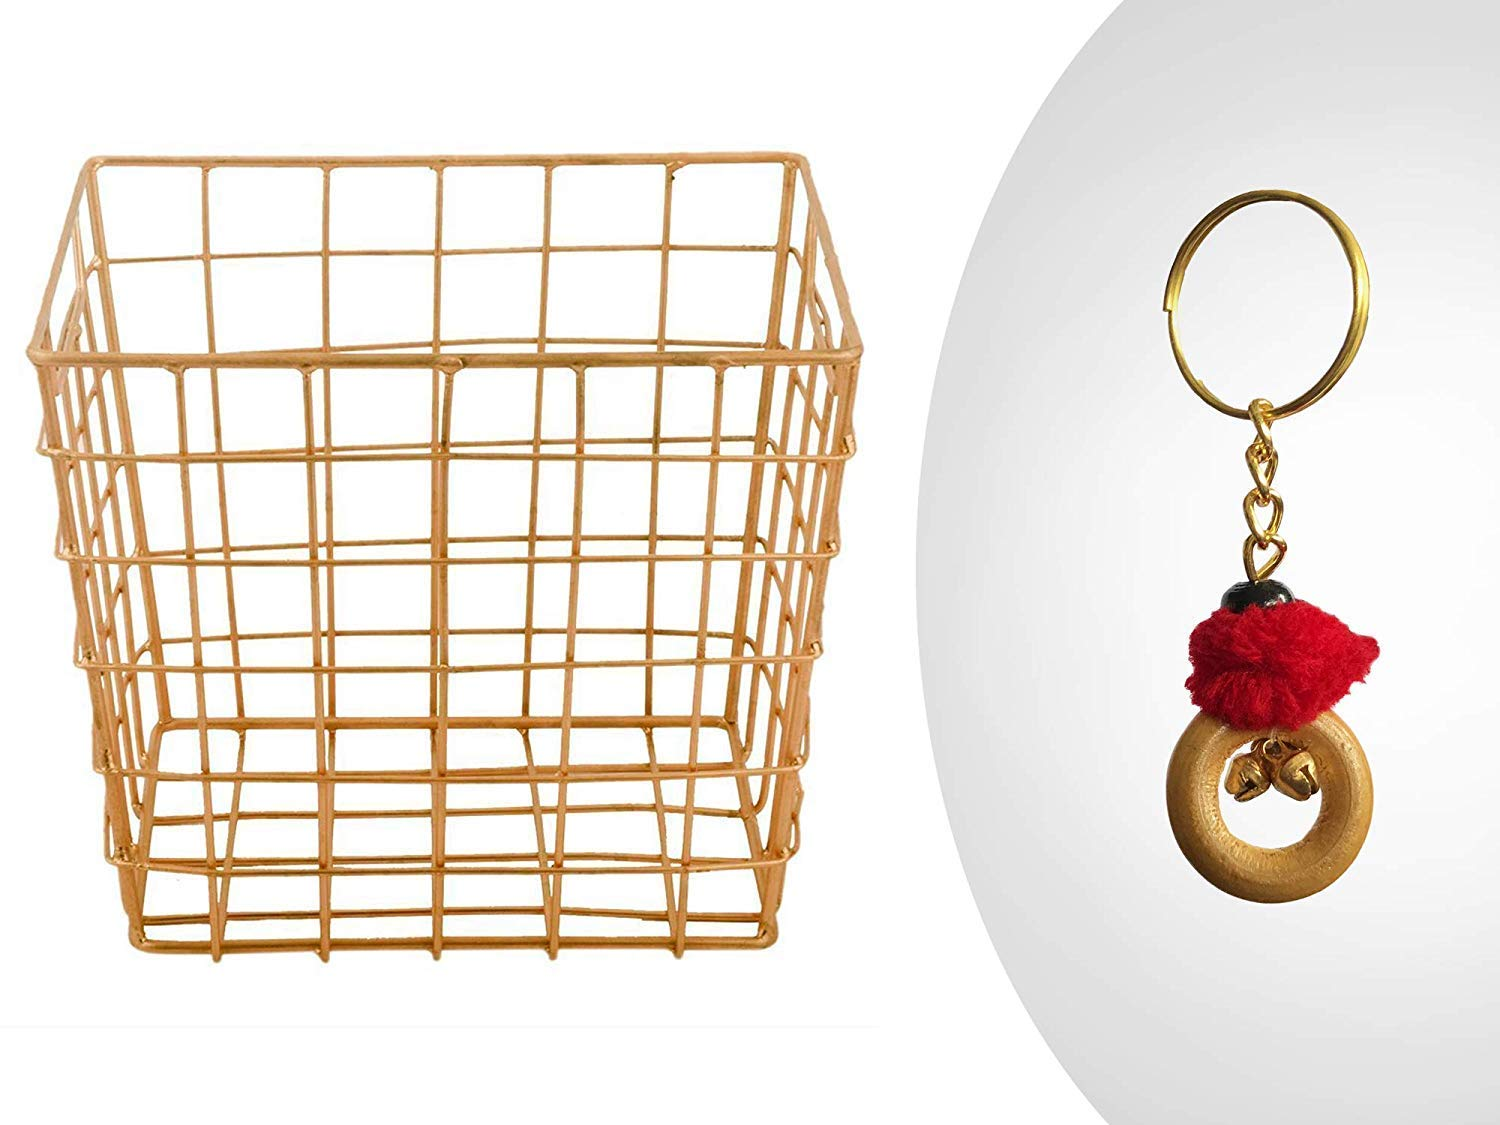 Metal Wire Mesh Square Brass Plated Utility Basket Storage Organizer for Kitchen Office Cabinets Makeup Bathroom Laundry Closets Garage with Free Keychain Housewarming Gift for Him /& Her